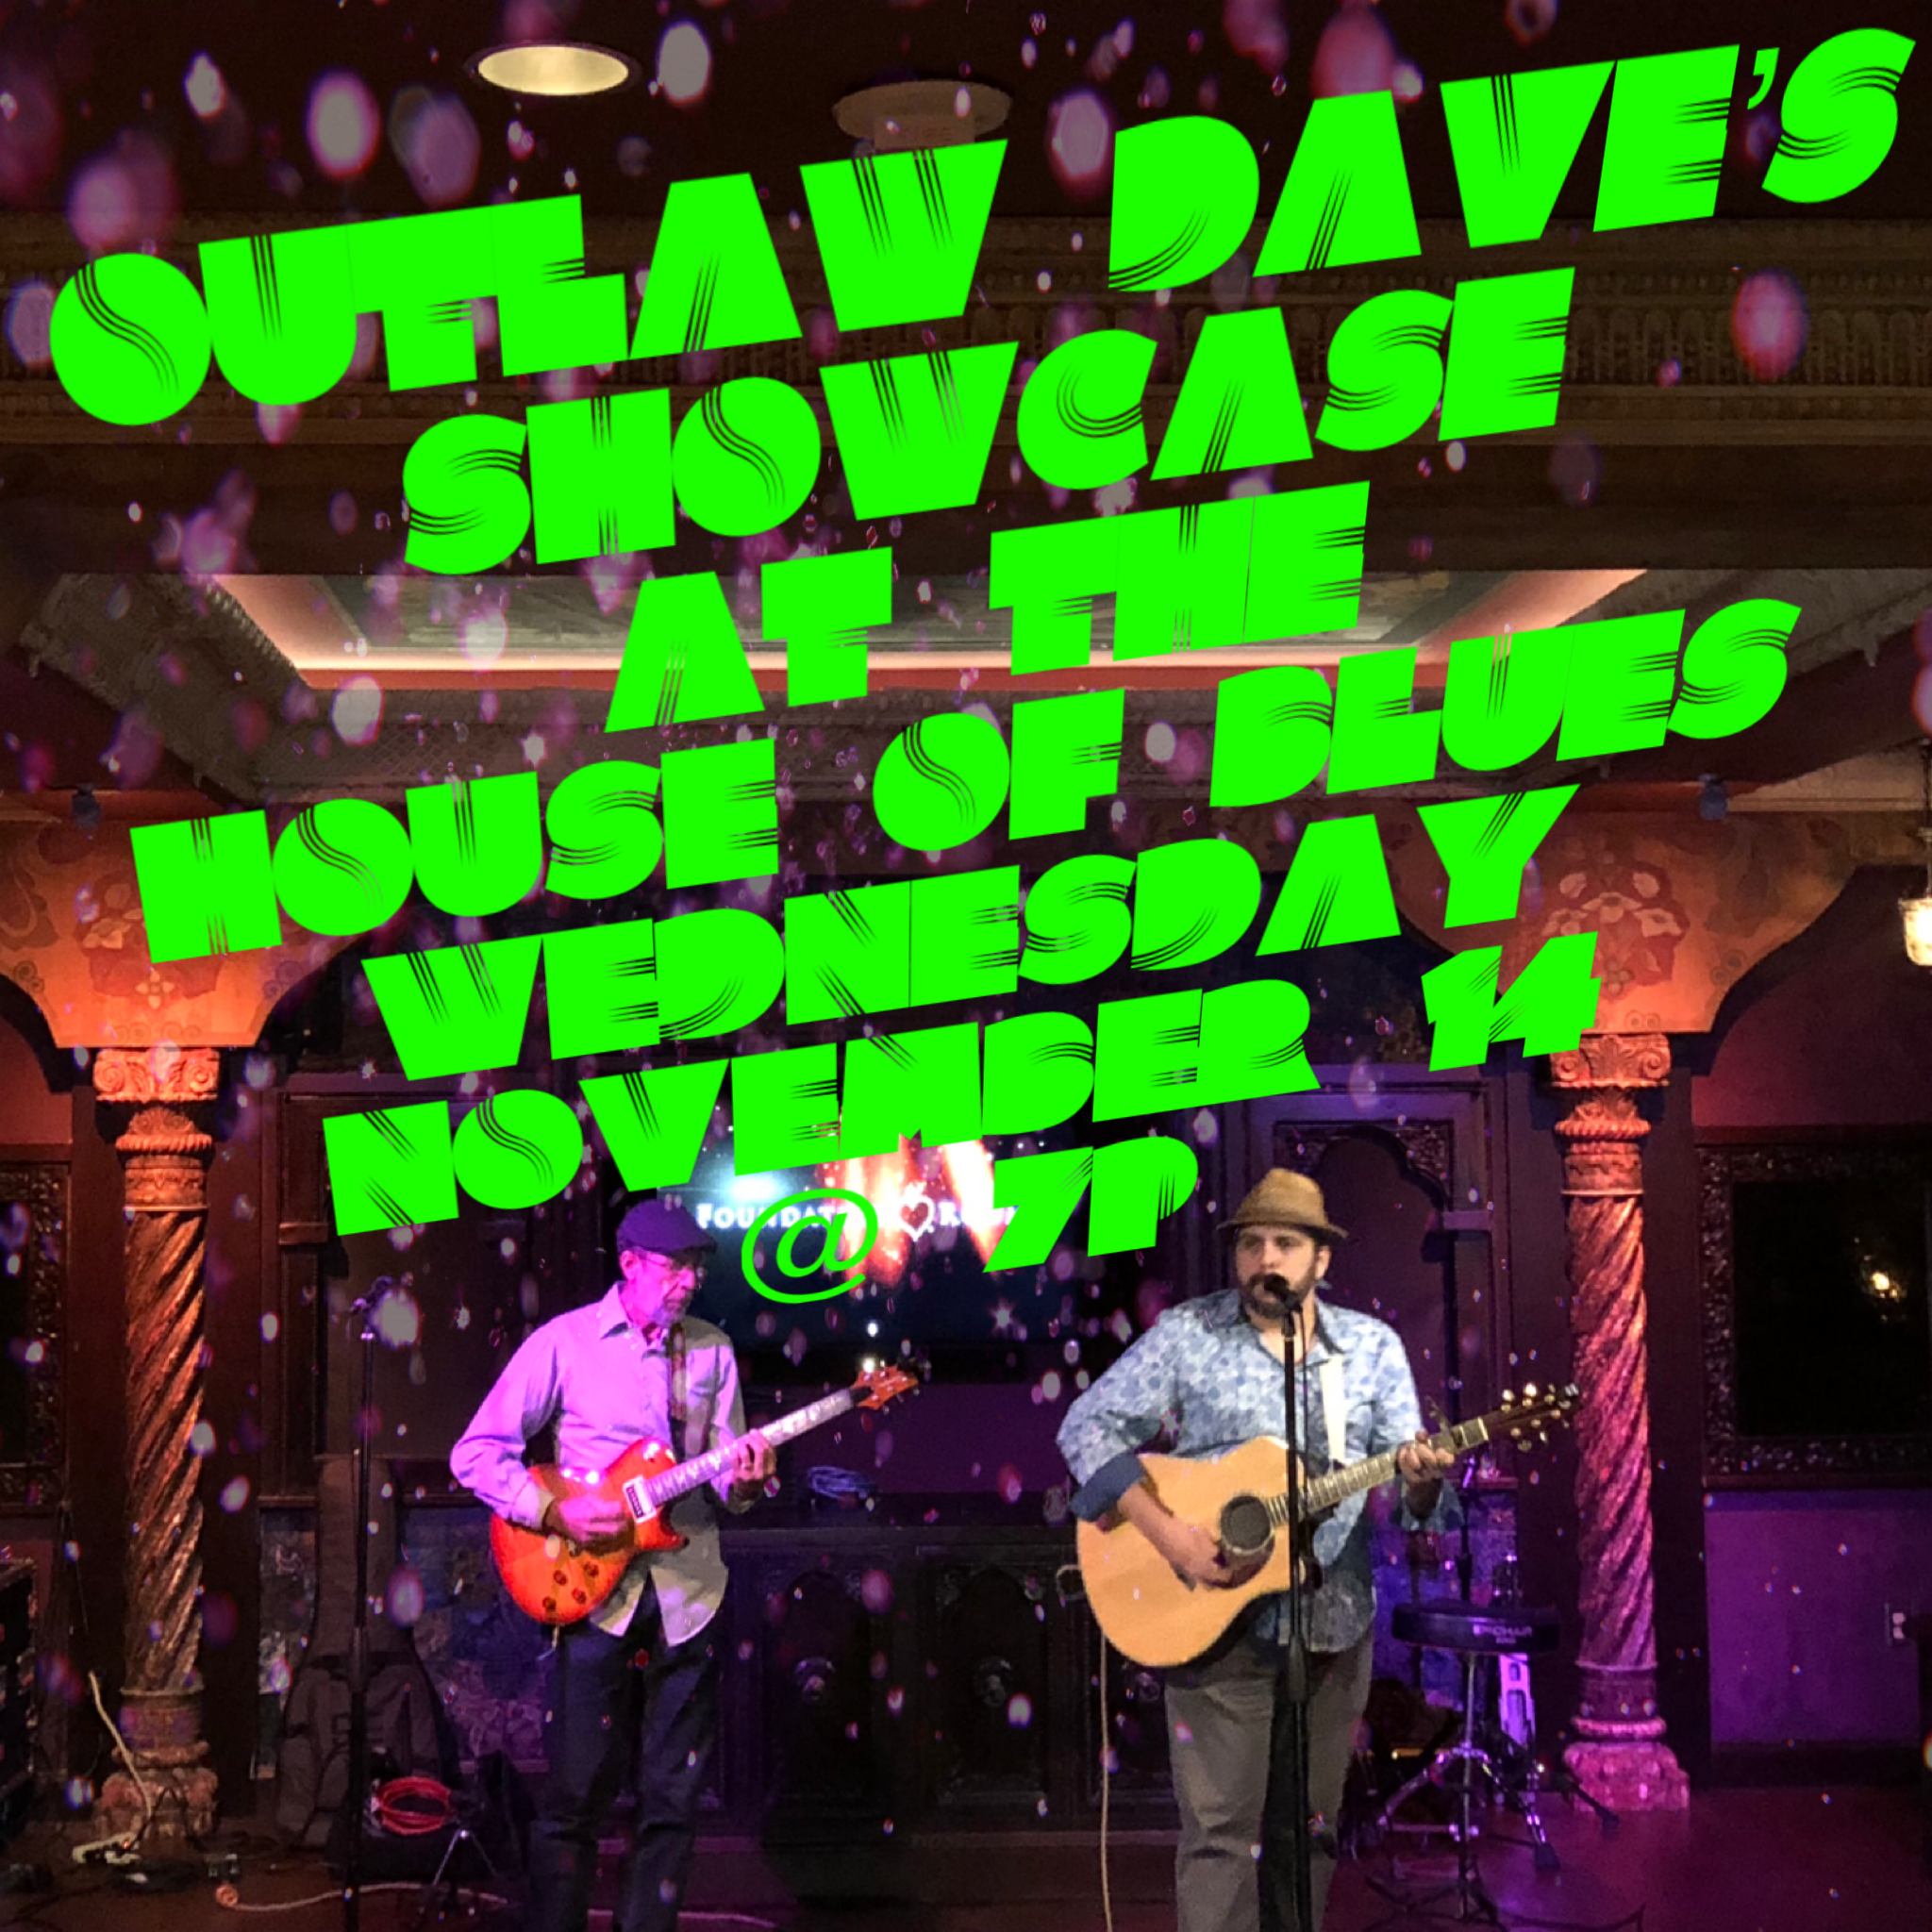 Outlaw Dave showcase.png